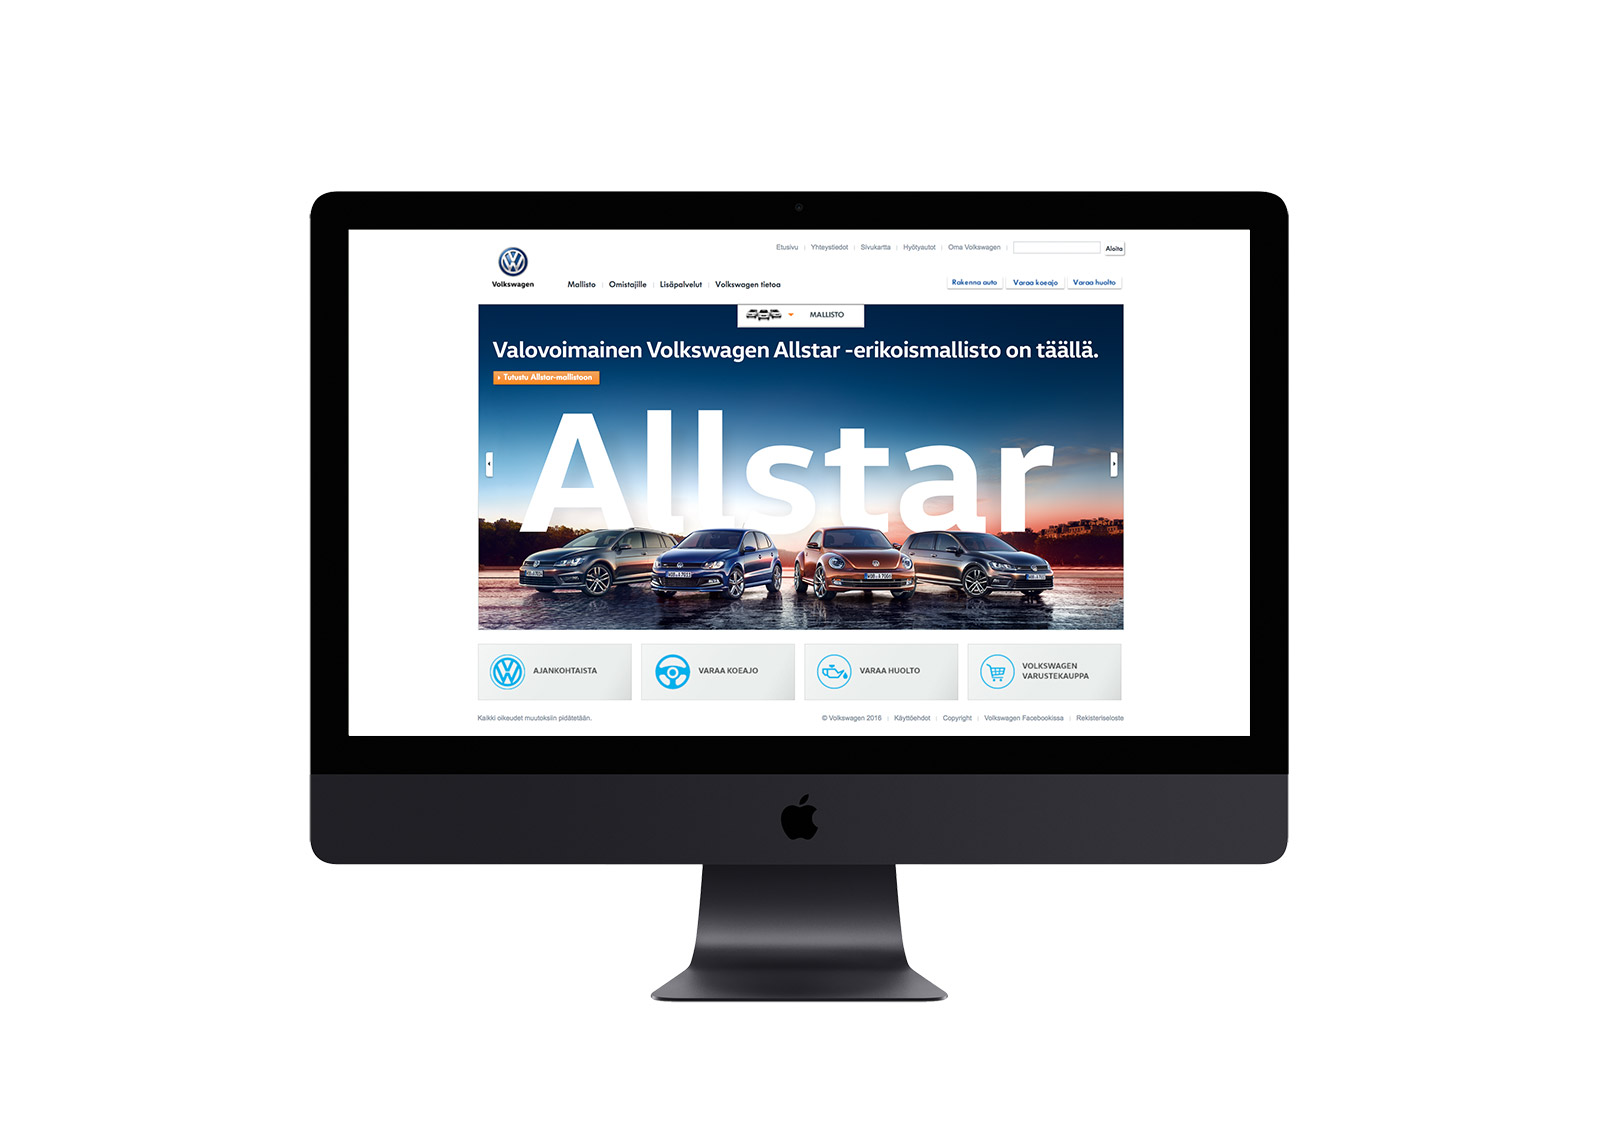 Volkswagen website homepage 2016